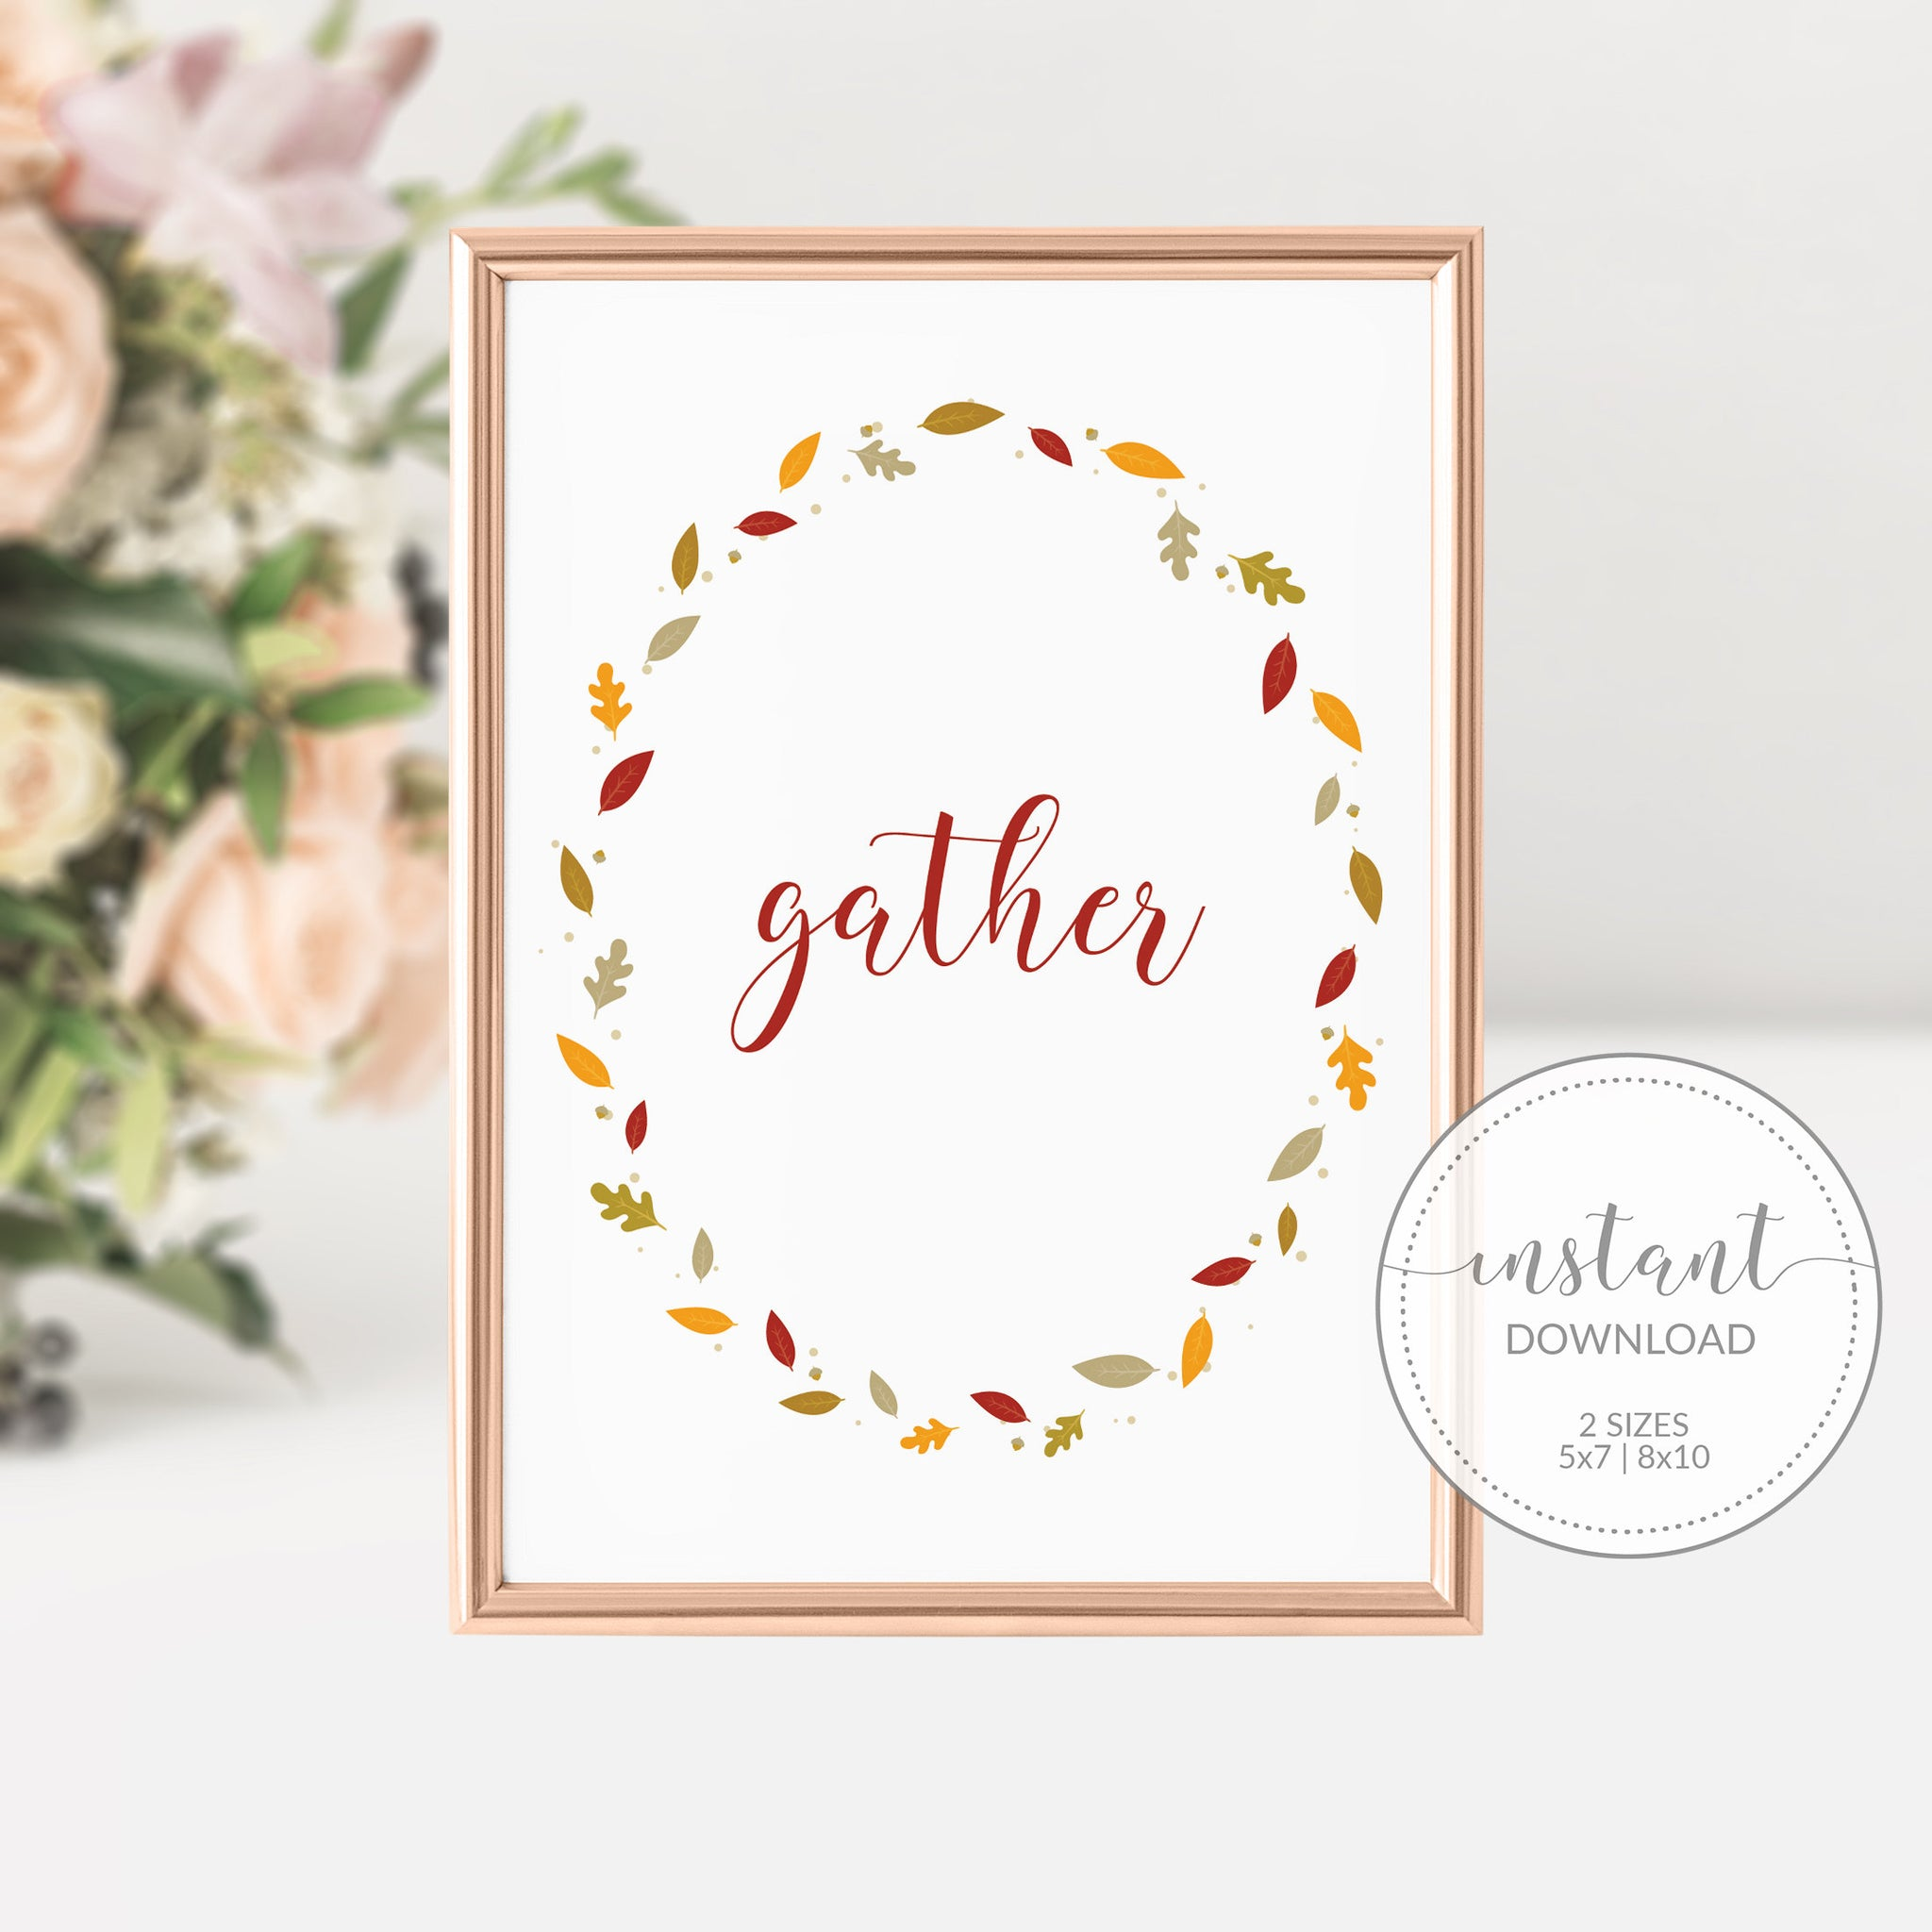 Gather Sign Printable, Thanksgiving Decor, Thanksgiving Signs Printable, Fall Decor for Mantle, INSTANT DOWNLOAD - FL100